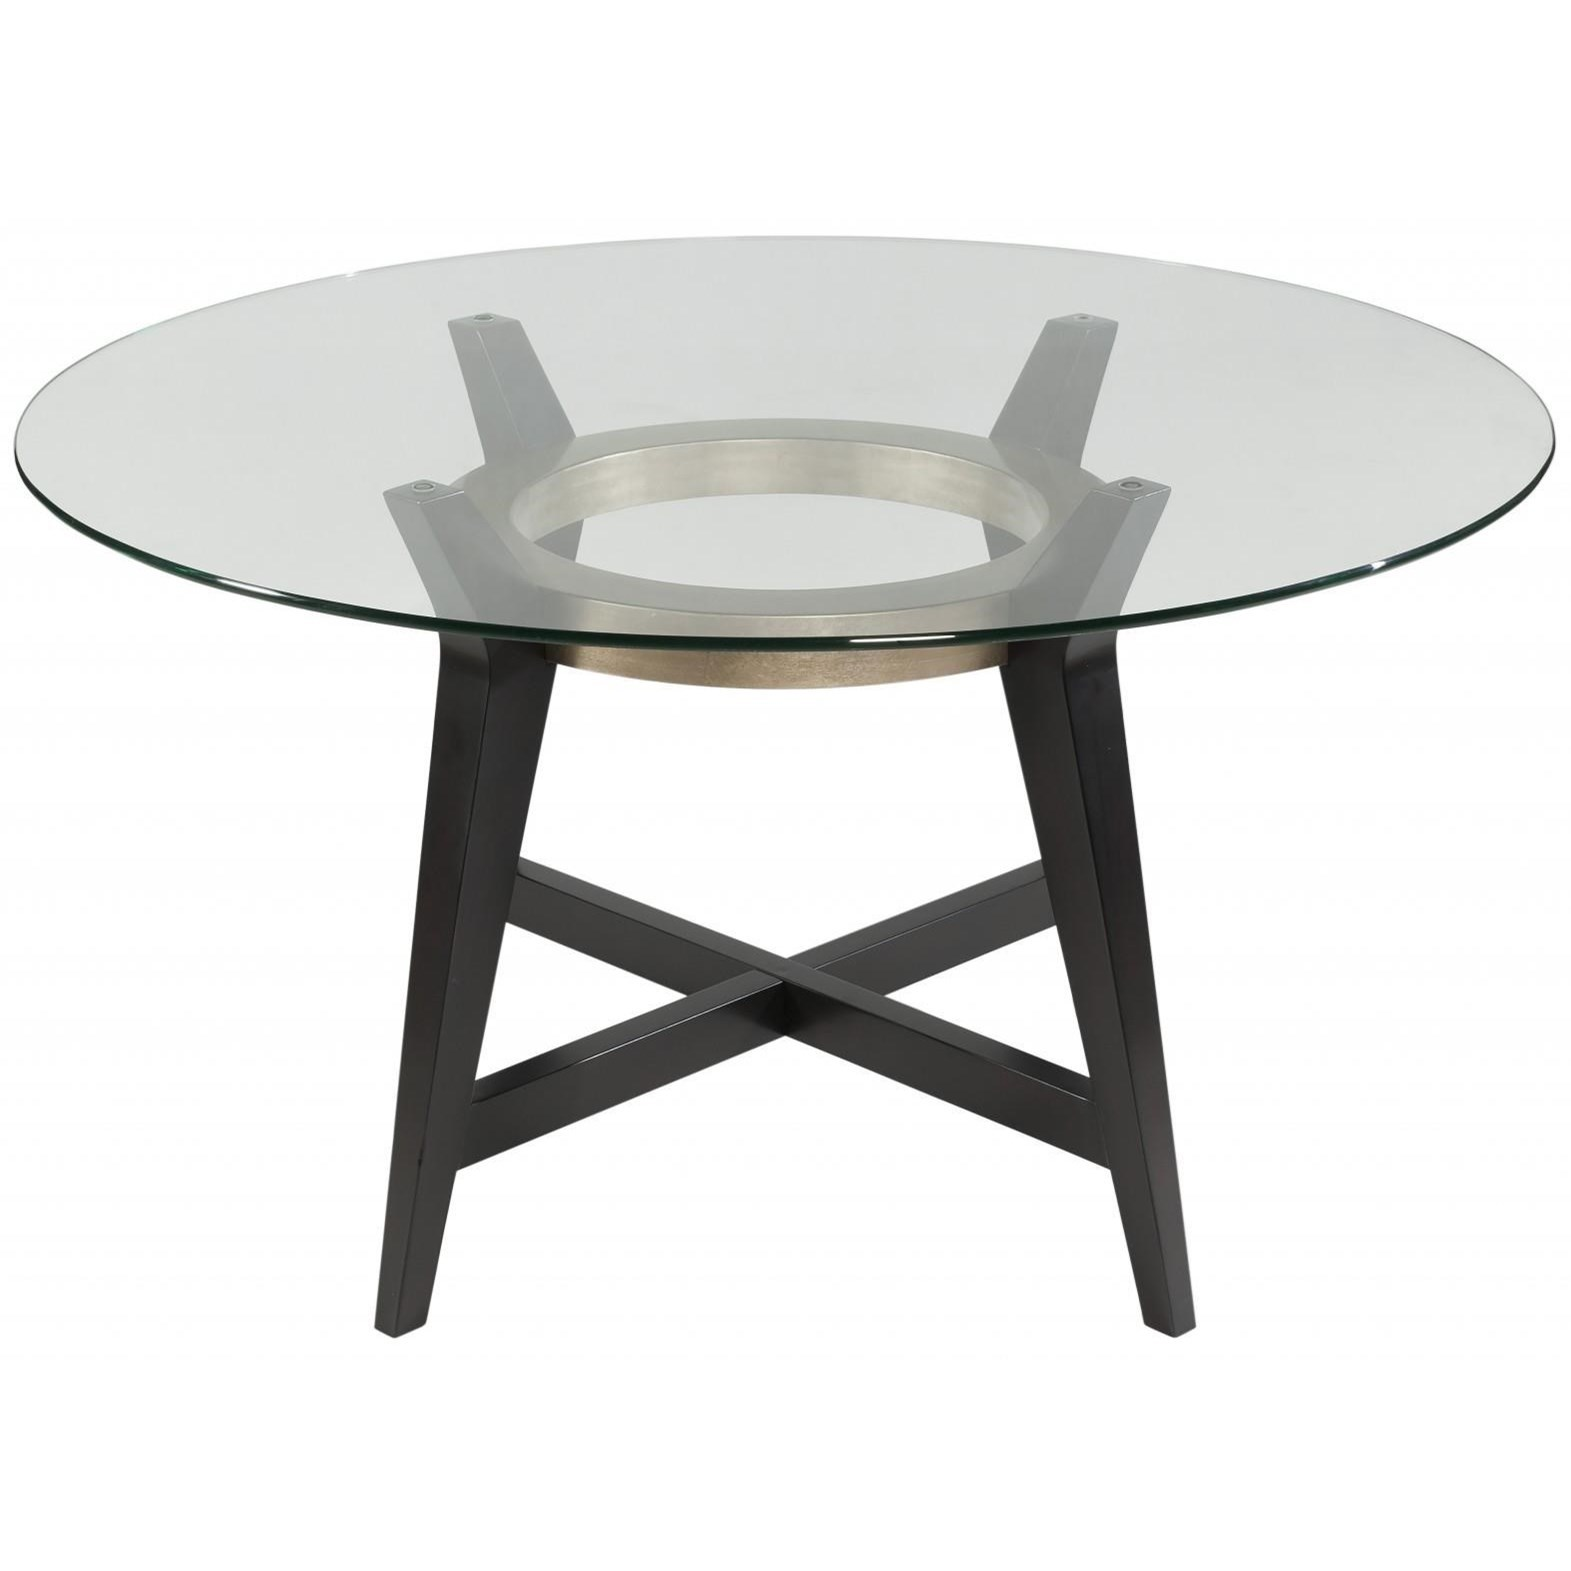 Thoroughly Modern Elston Dining Table by Bassett Mirror at Alison Craig Home Furnishings